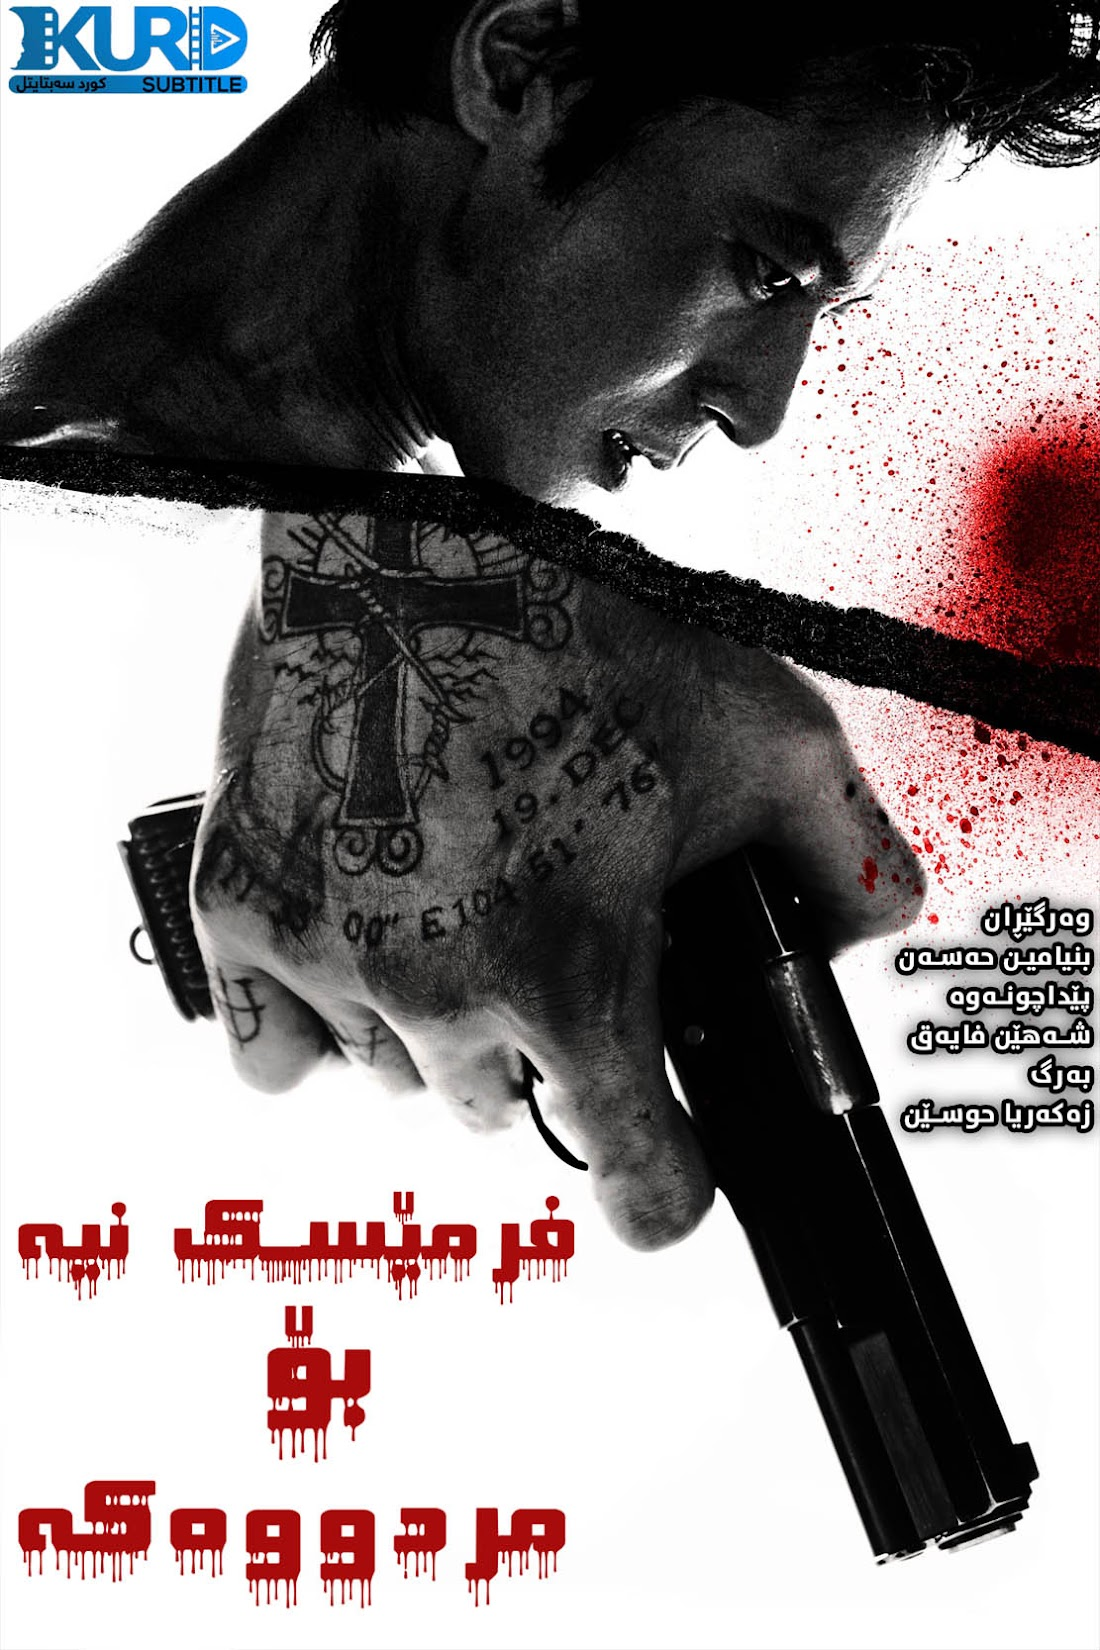 No Tears for the Dead kurdish poster